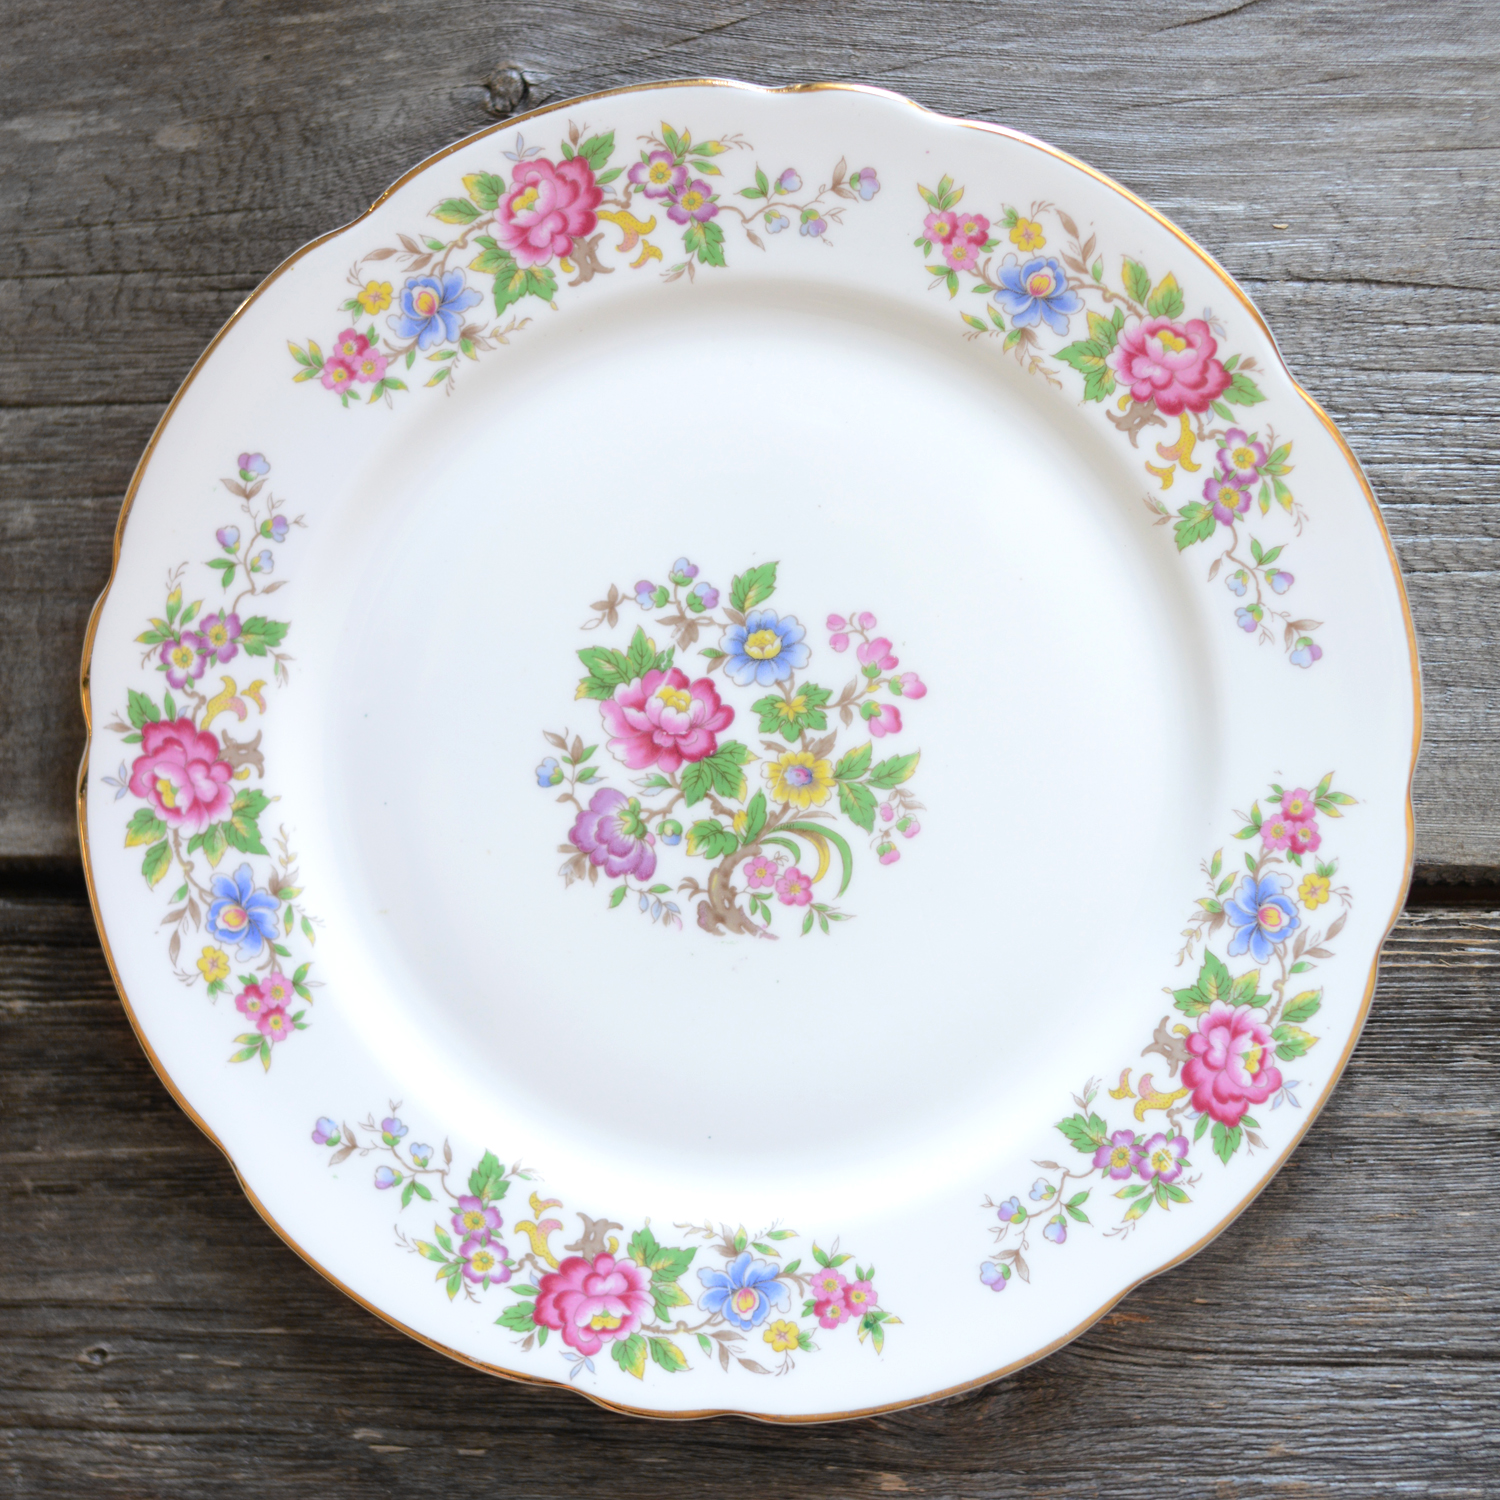 rochester dinner plate - 8 available